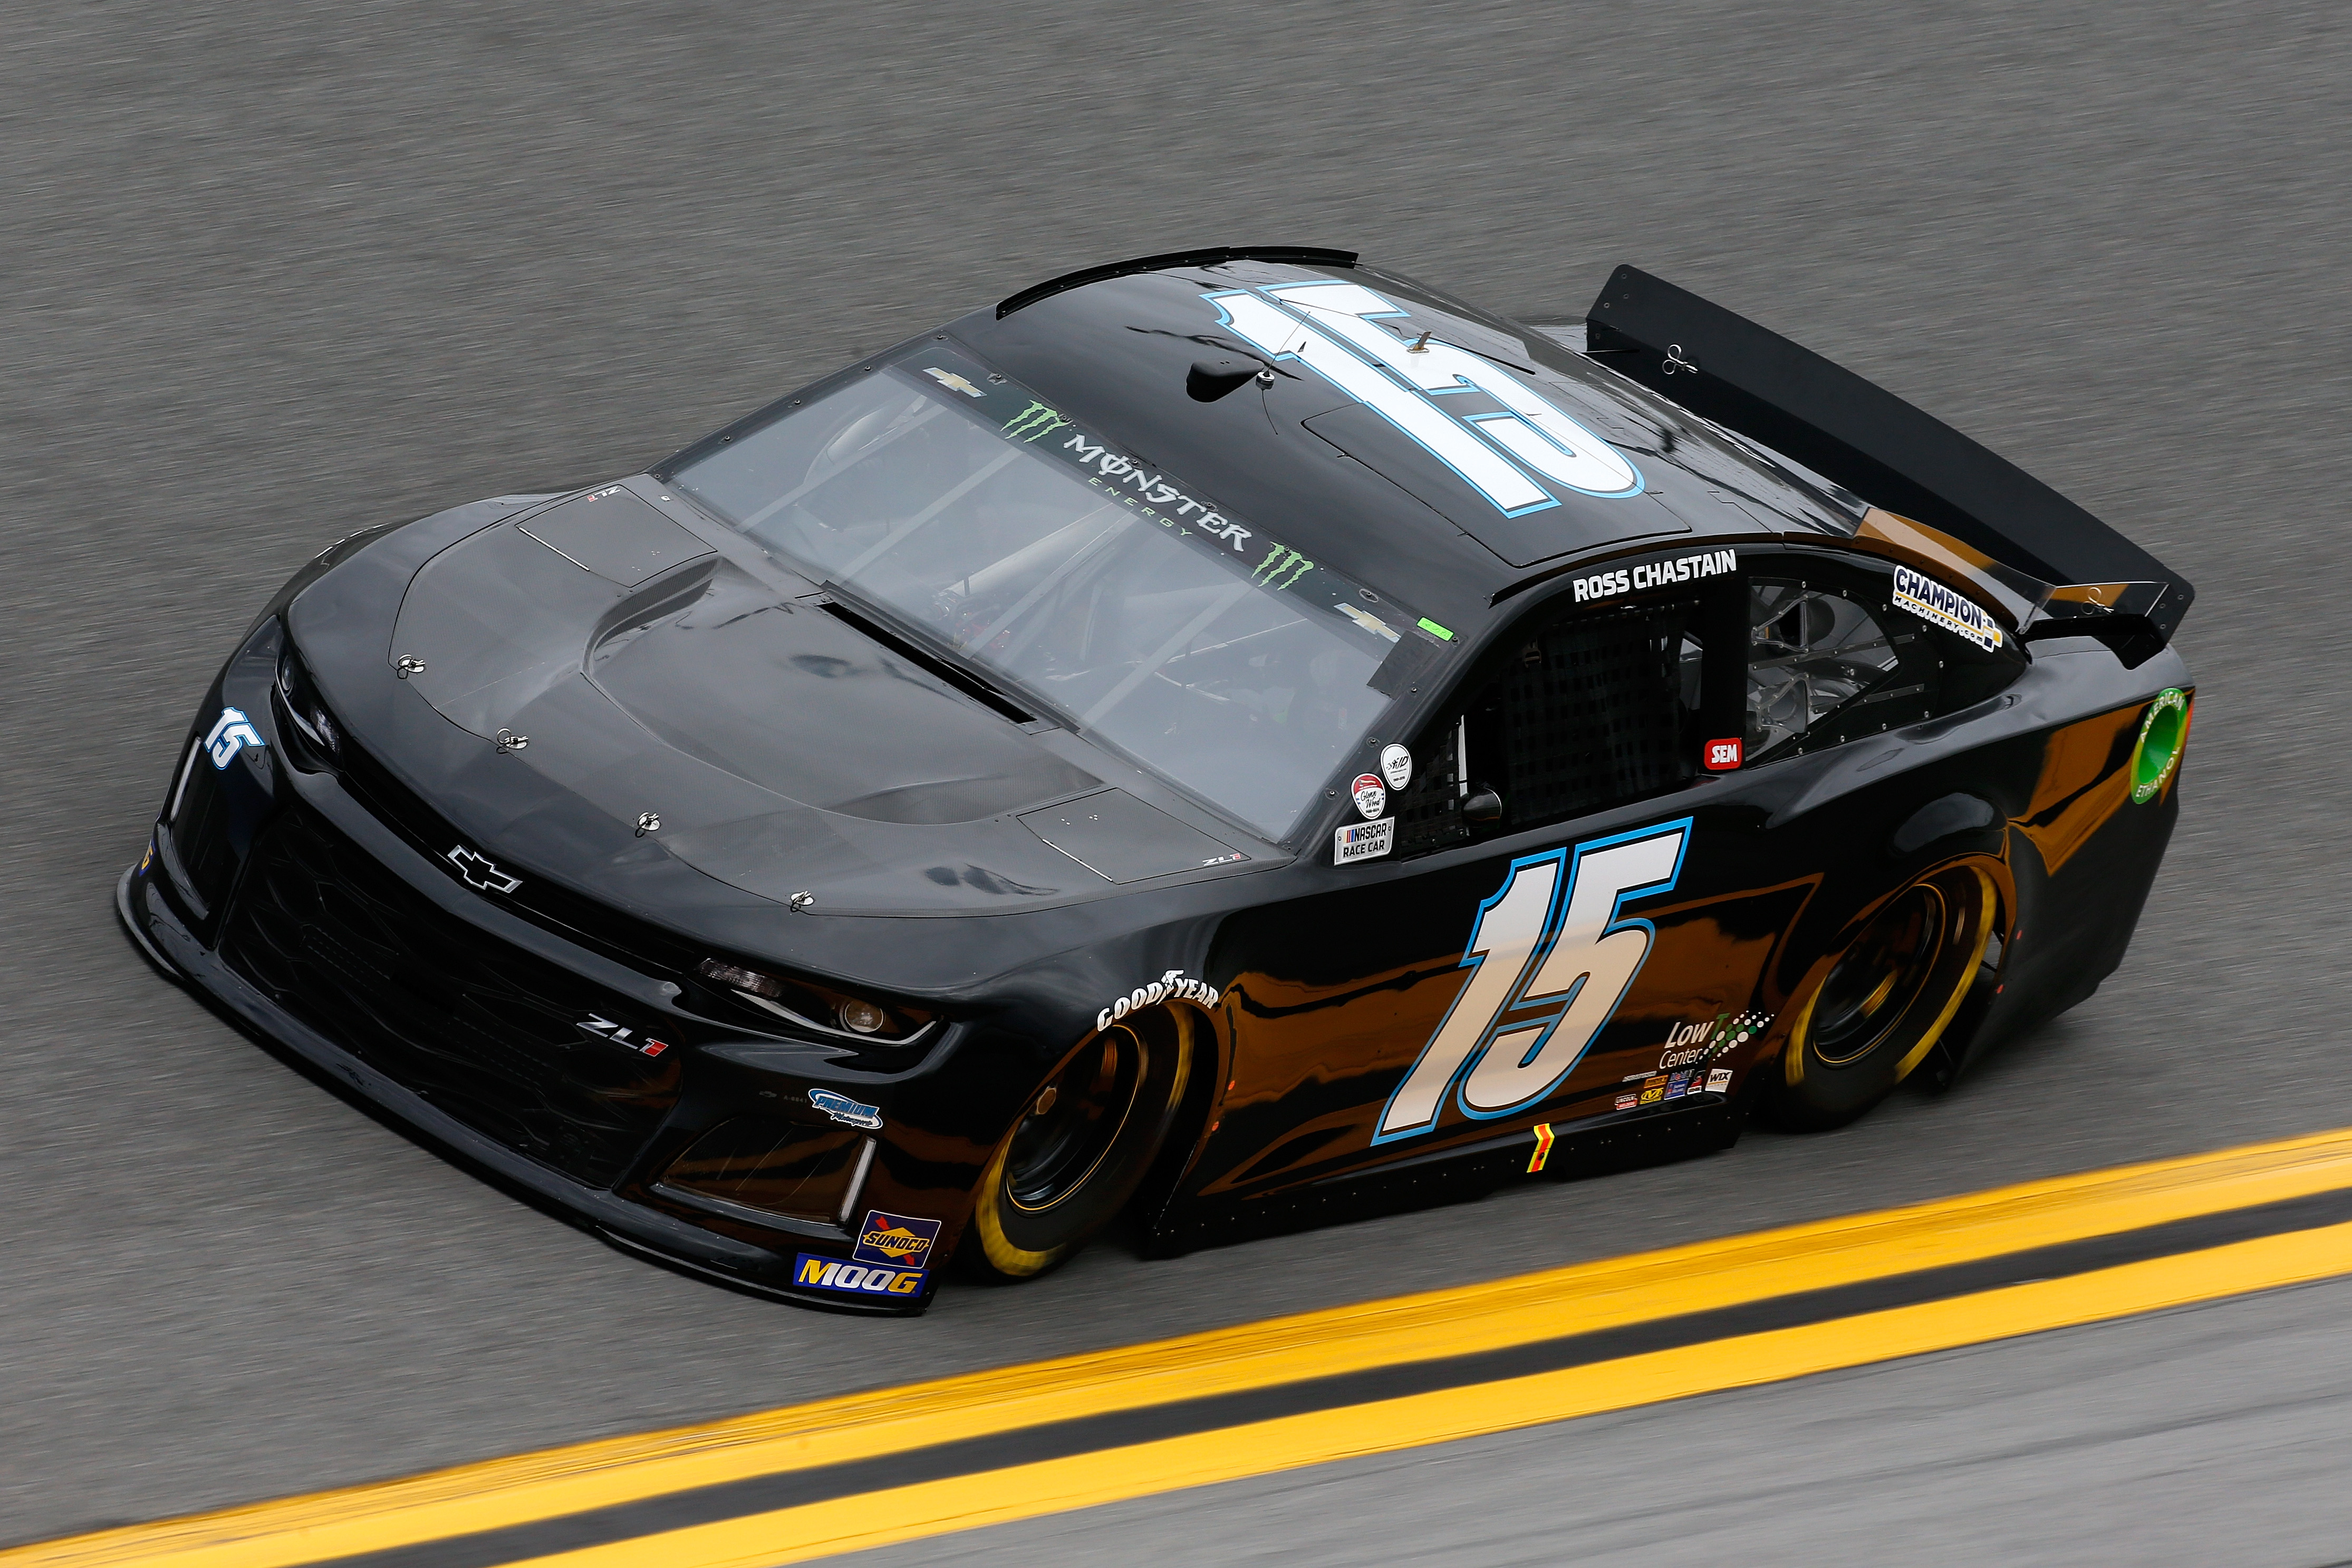 Driver Ross Chastain drives during practice for the Monster Energy NASCAR Cup Series 61st Annual Daytona 500